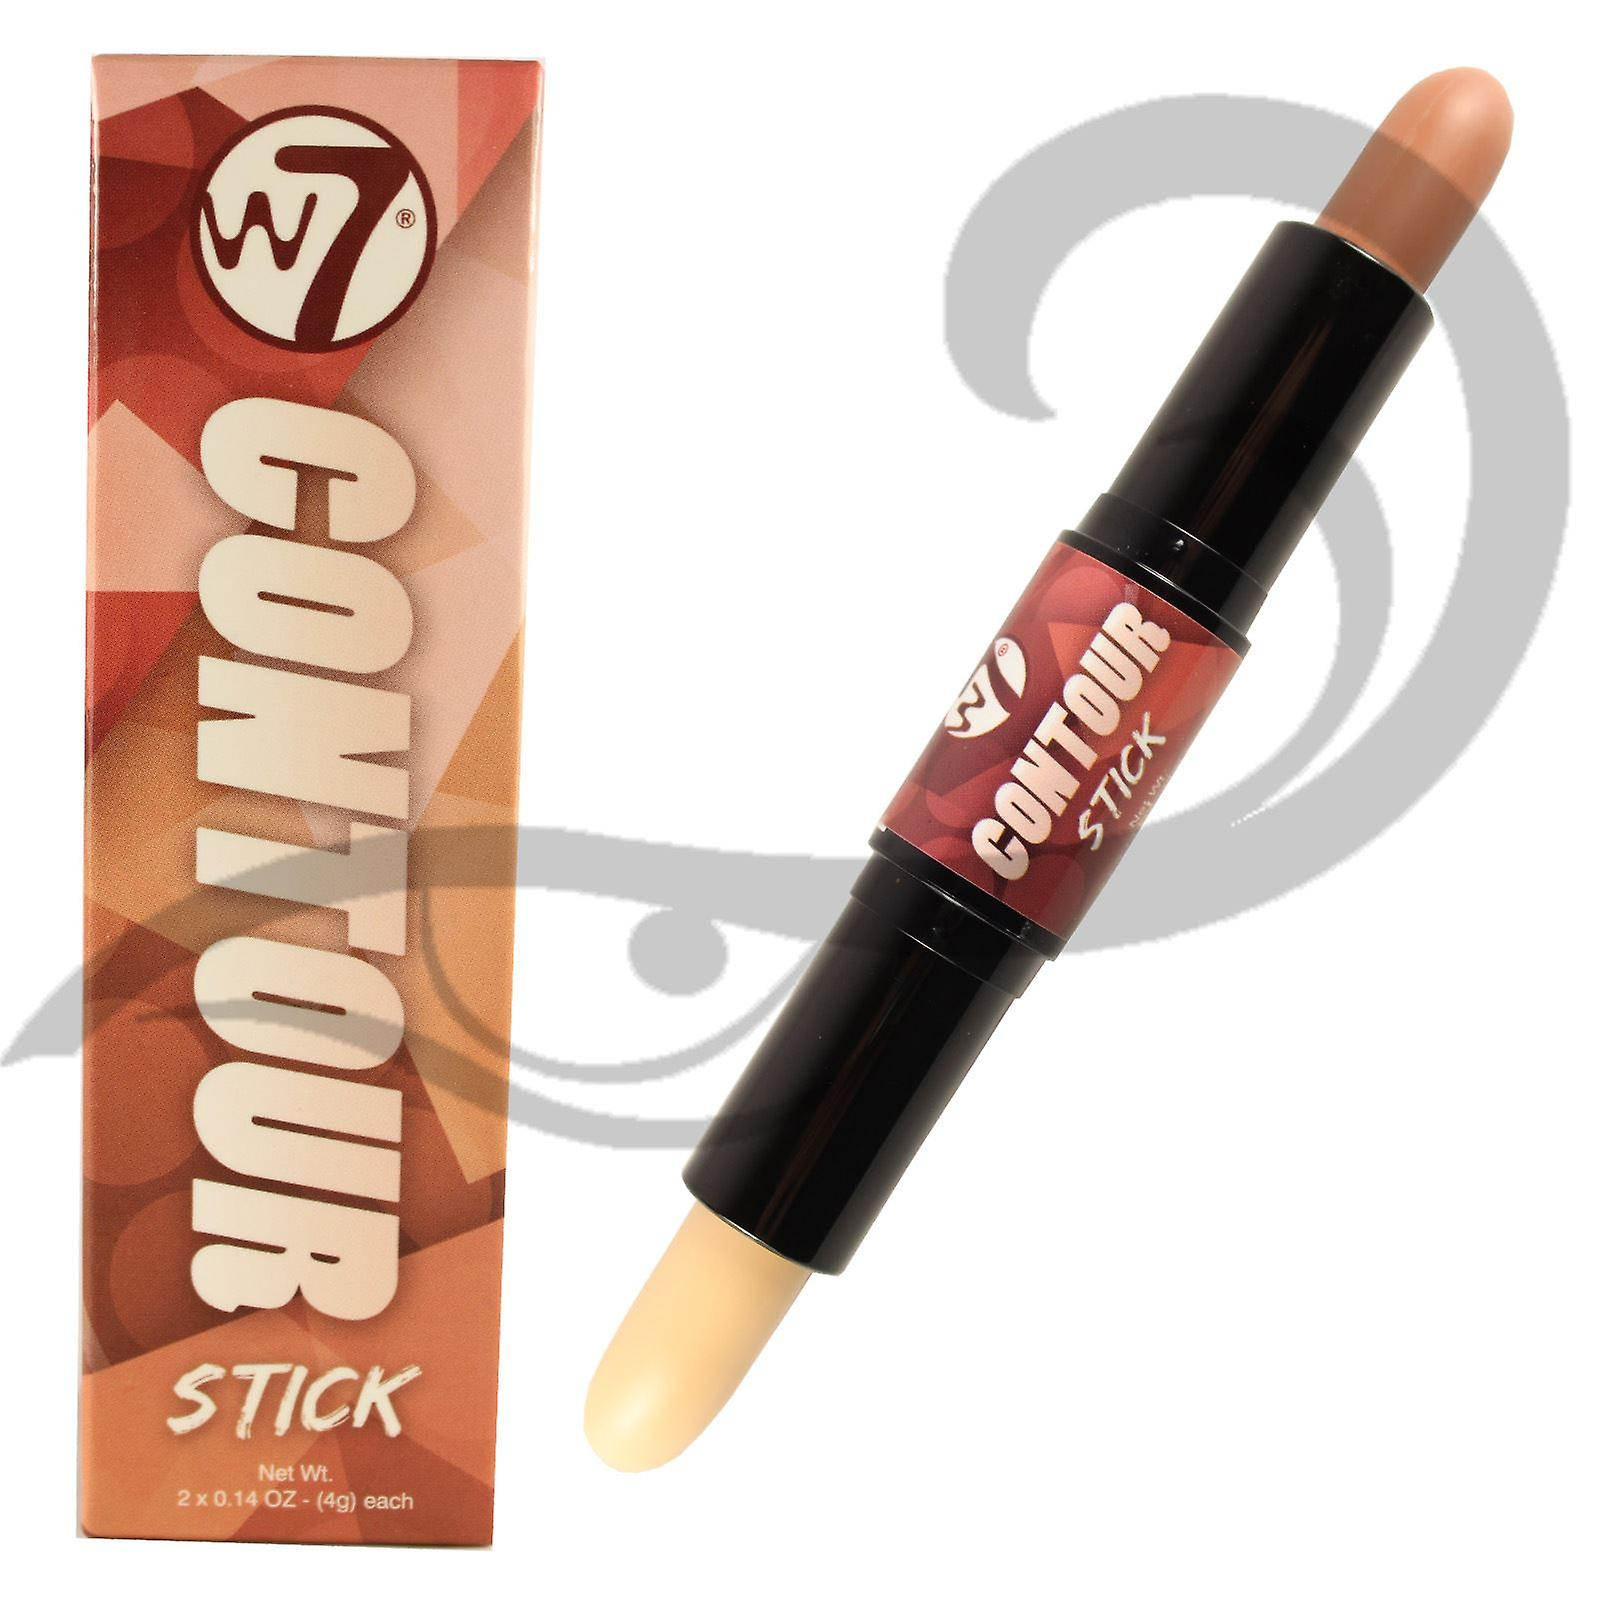 W7 Dual Face Shaping Contour Stick Fair